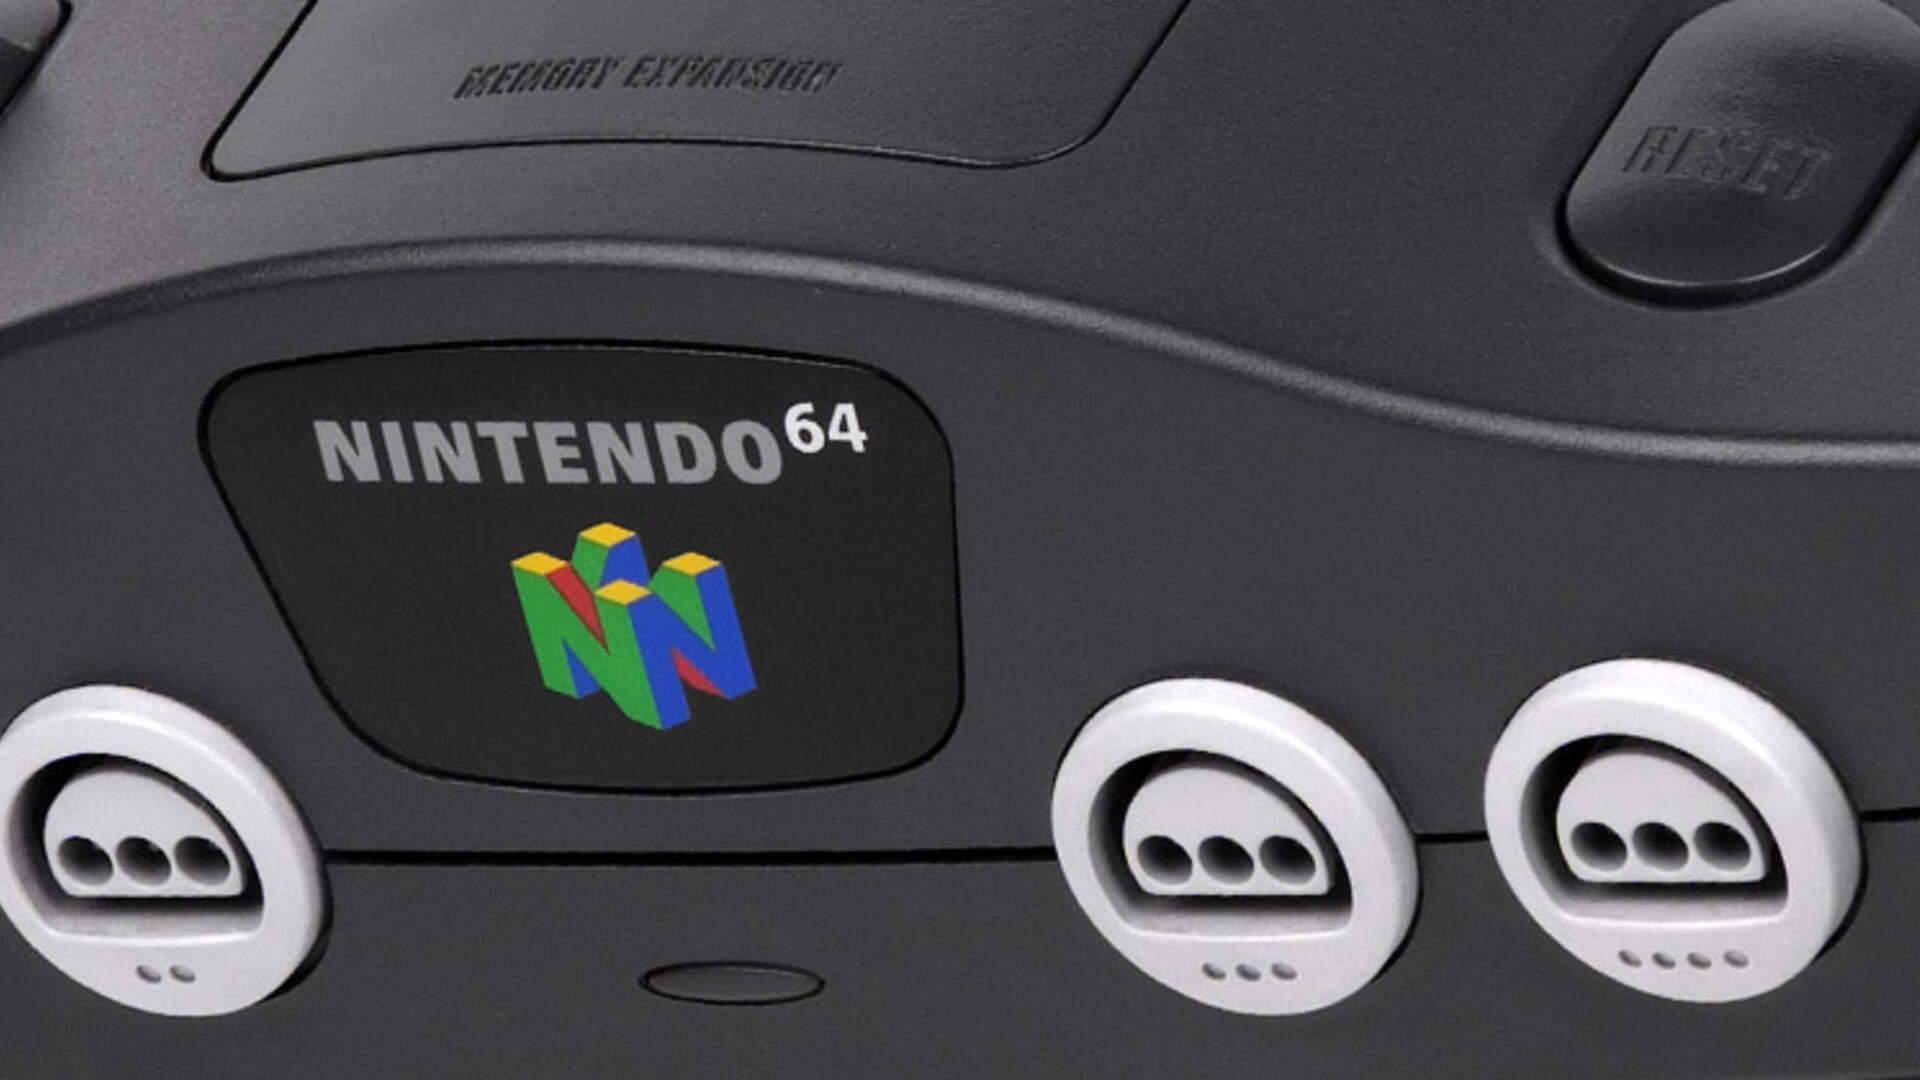 N64 Classic Mini - Why N64 Mini Could be the Best Retro Console With the Best Games - What Will N64 Classic Cost? Possible N64 Mini Release Date